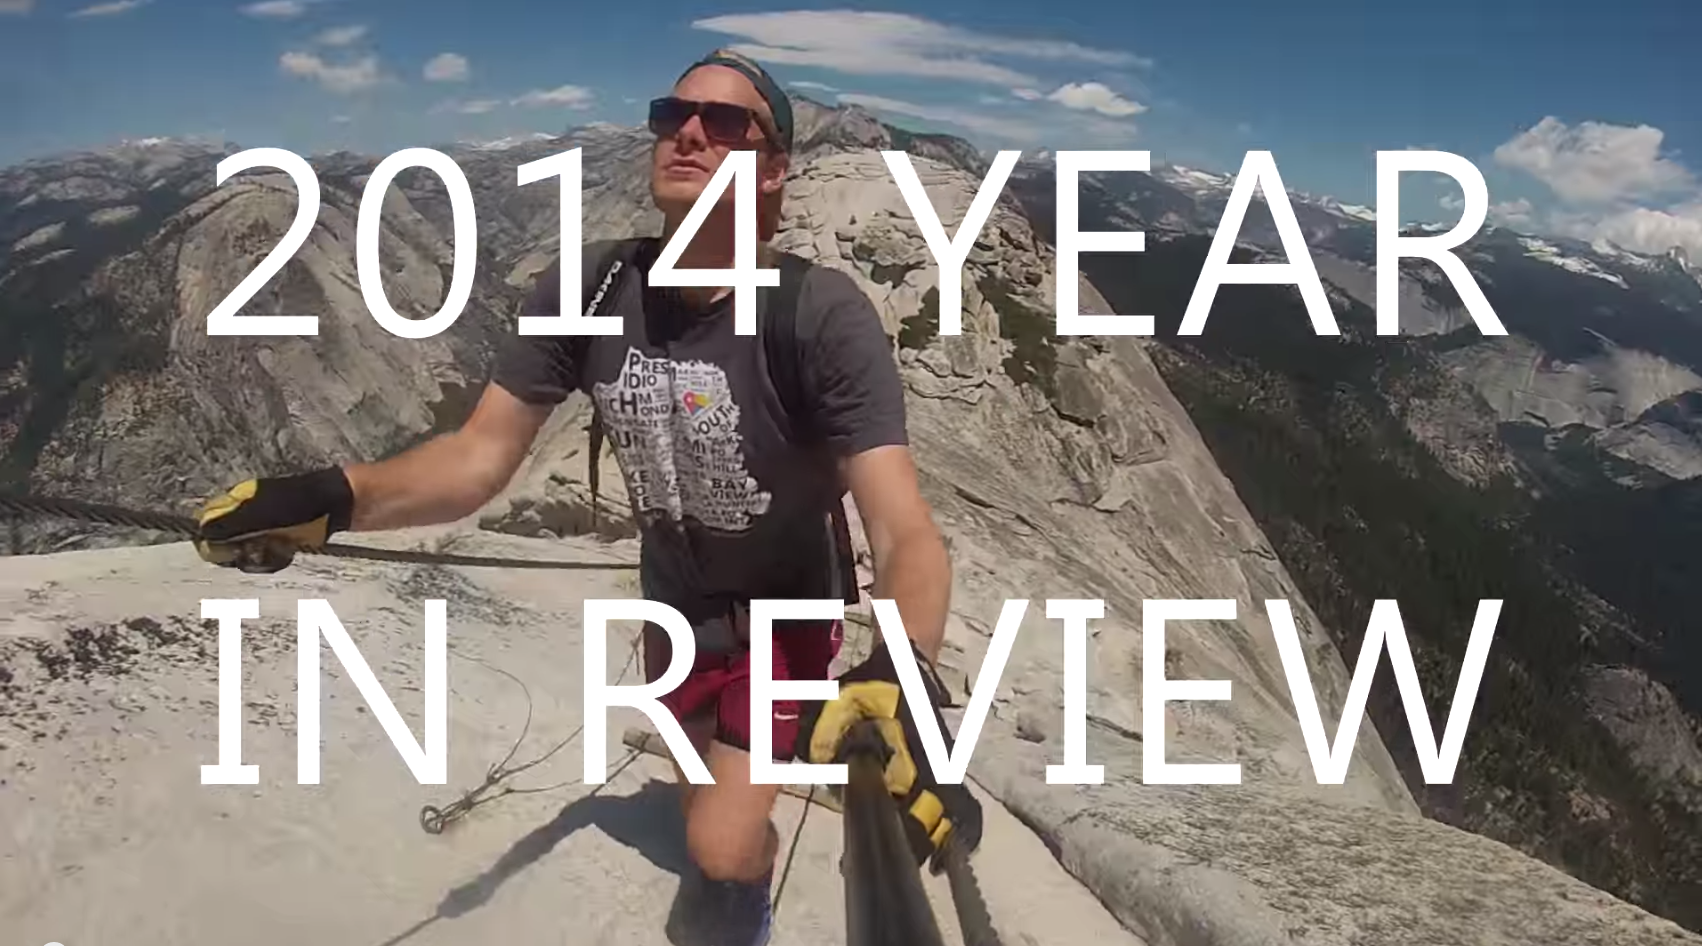 2014 in review: mama mia, what a year!